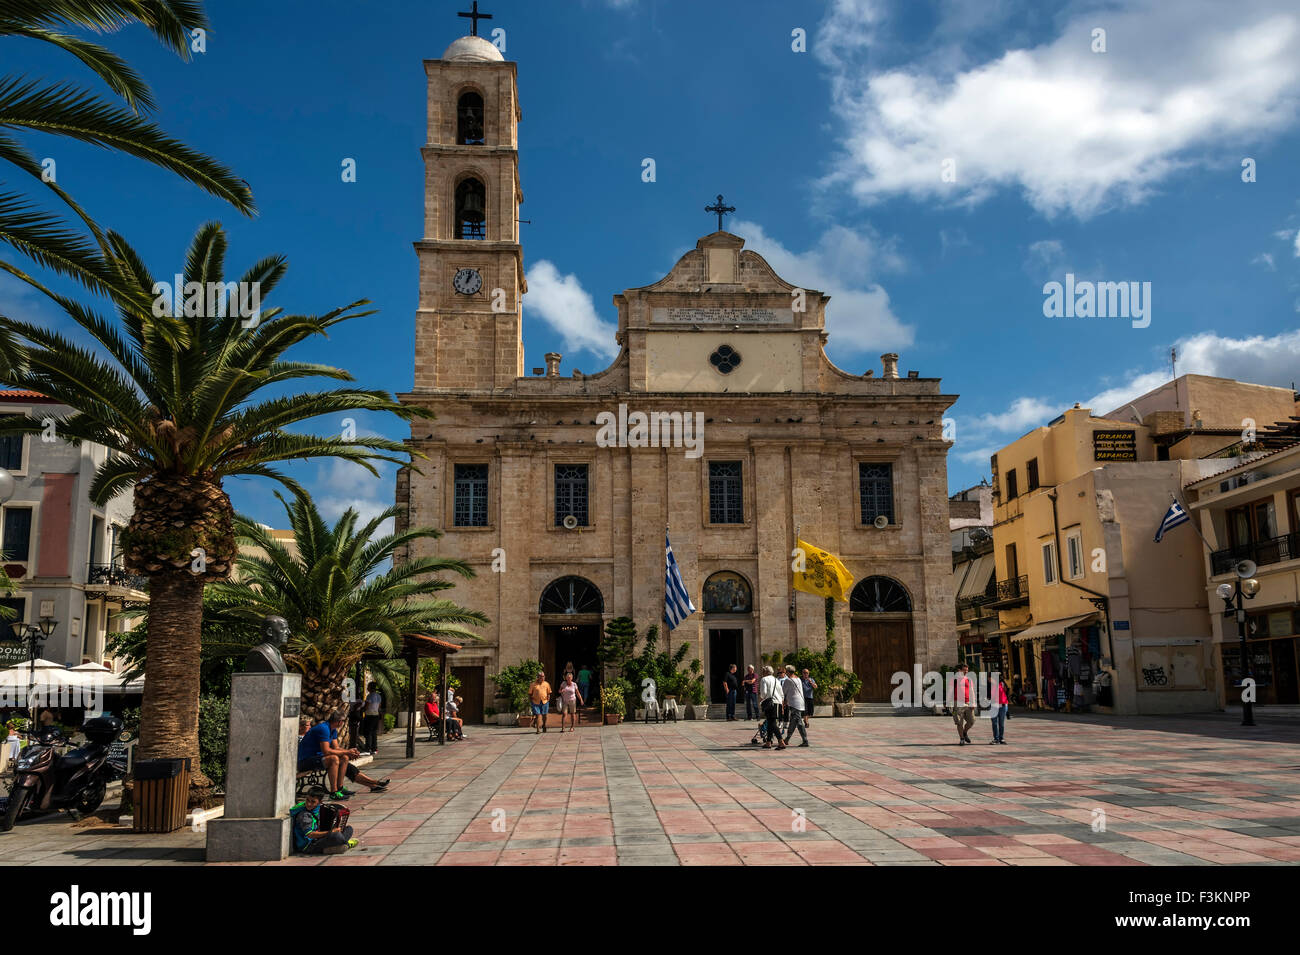 Church of Triartyri, Chania Crete. Stock Photo